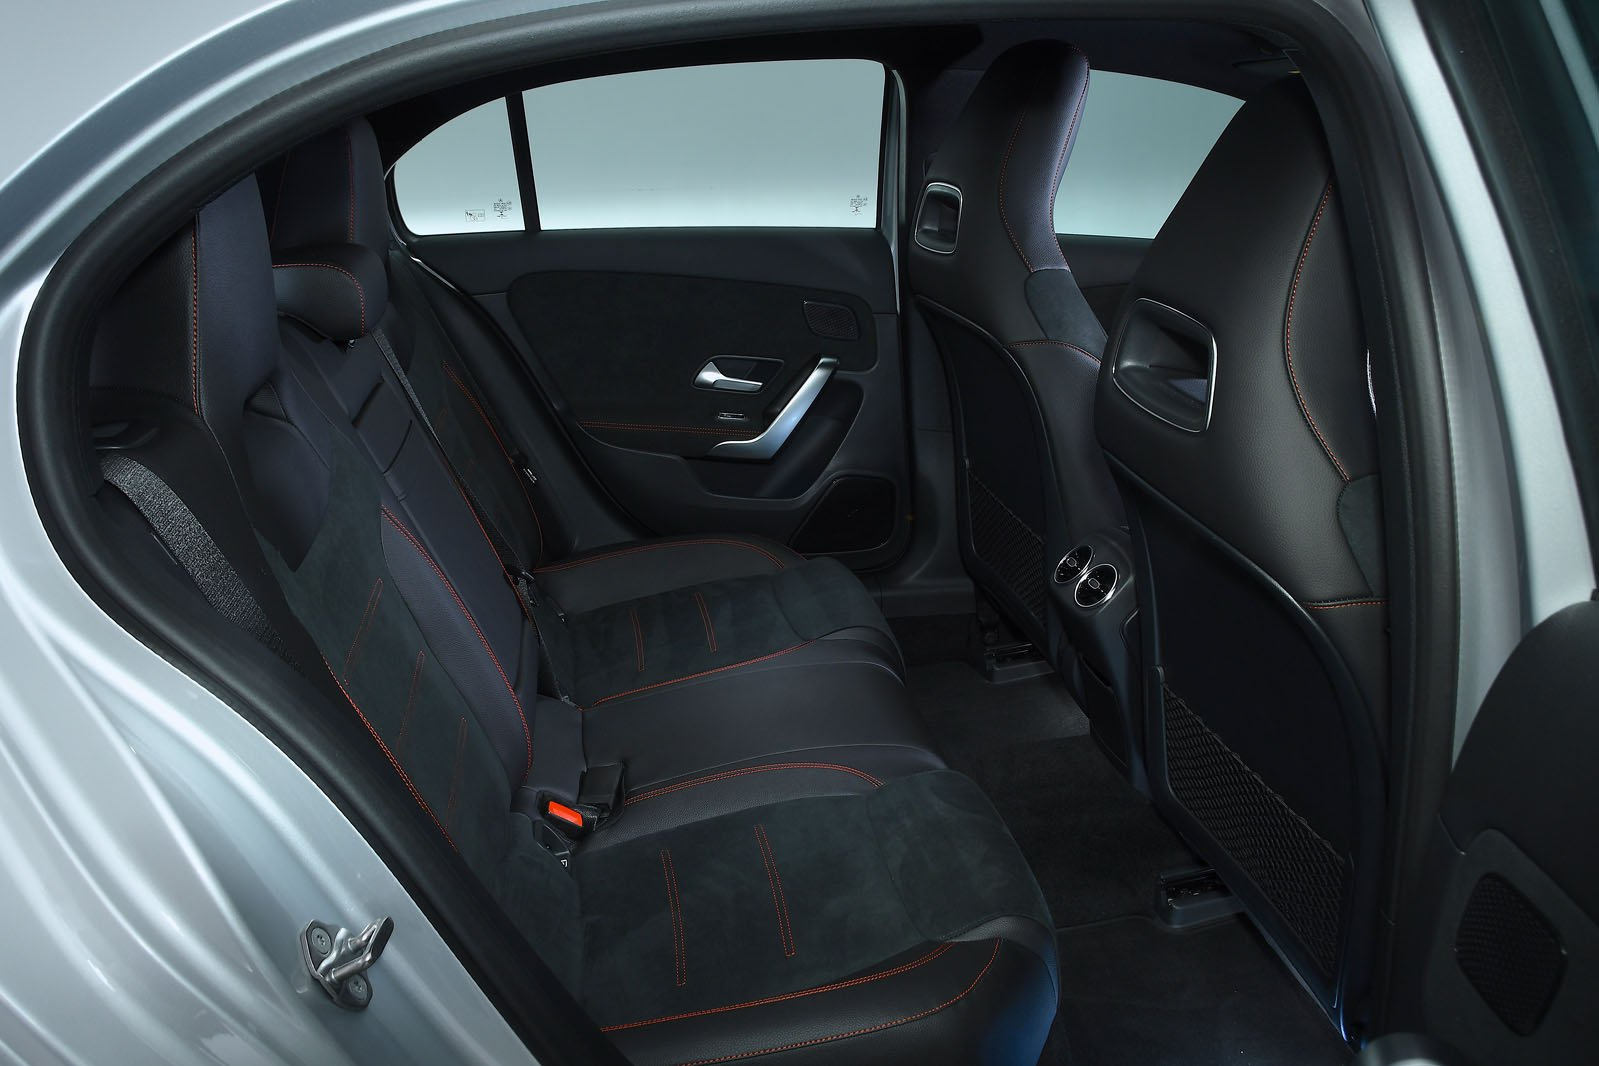 Mercedes A-Class rear seats